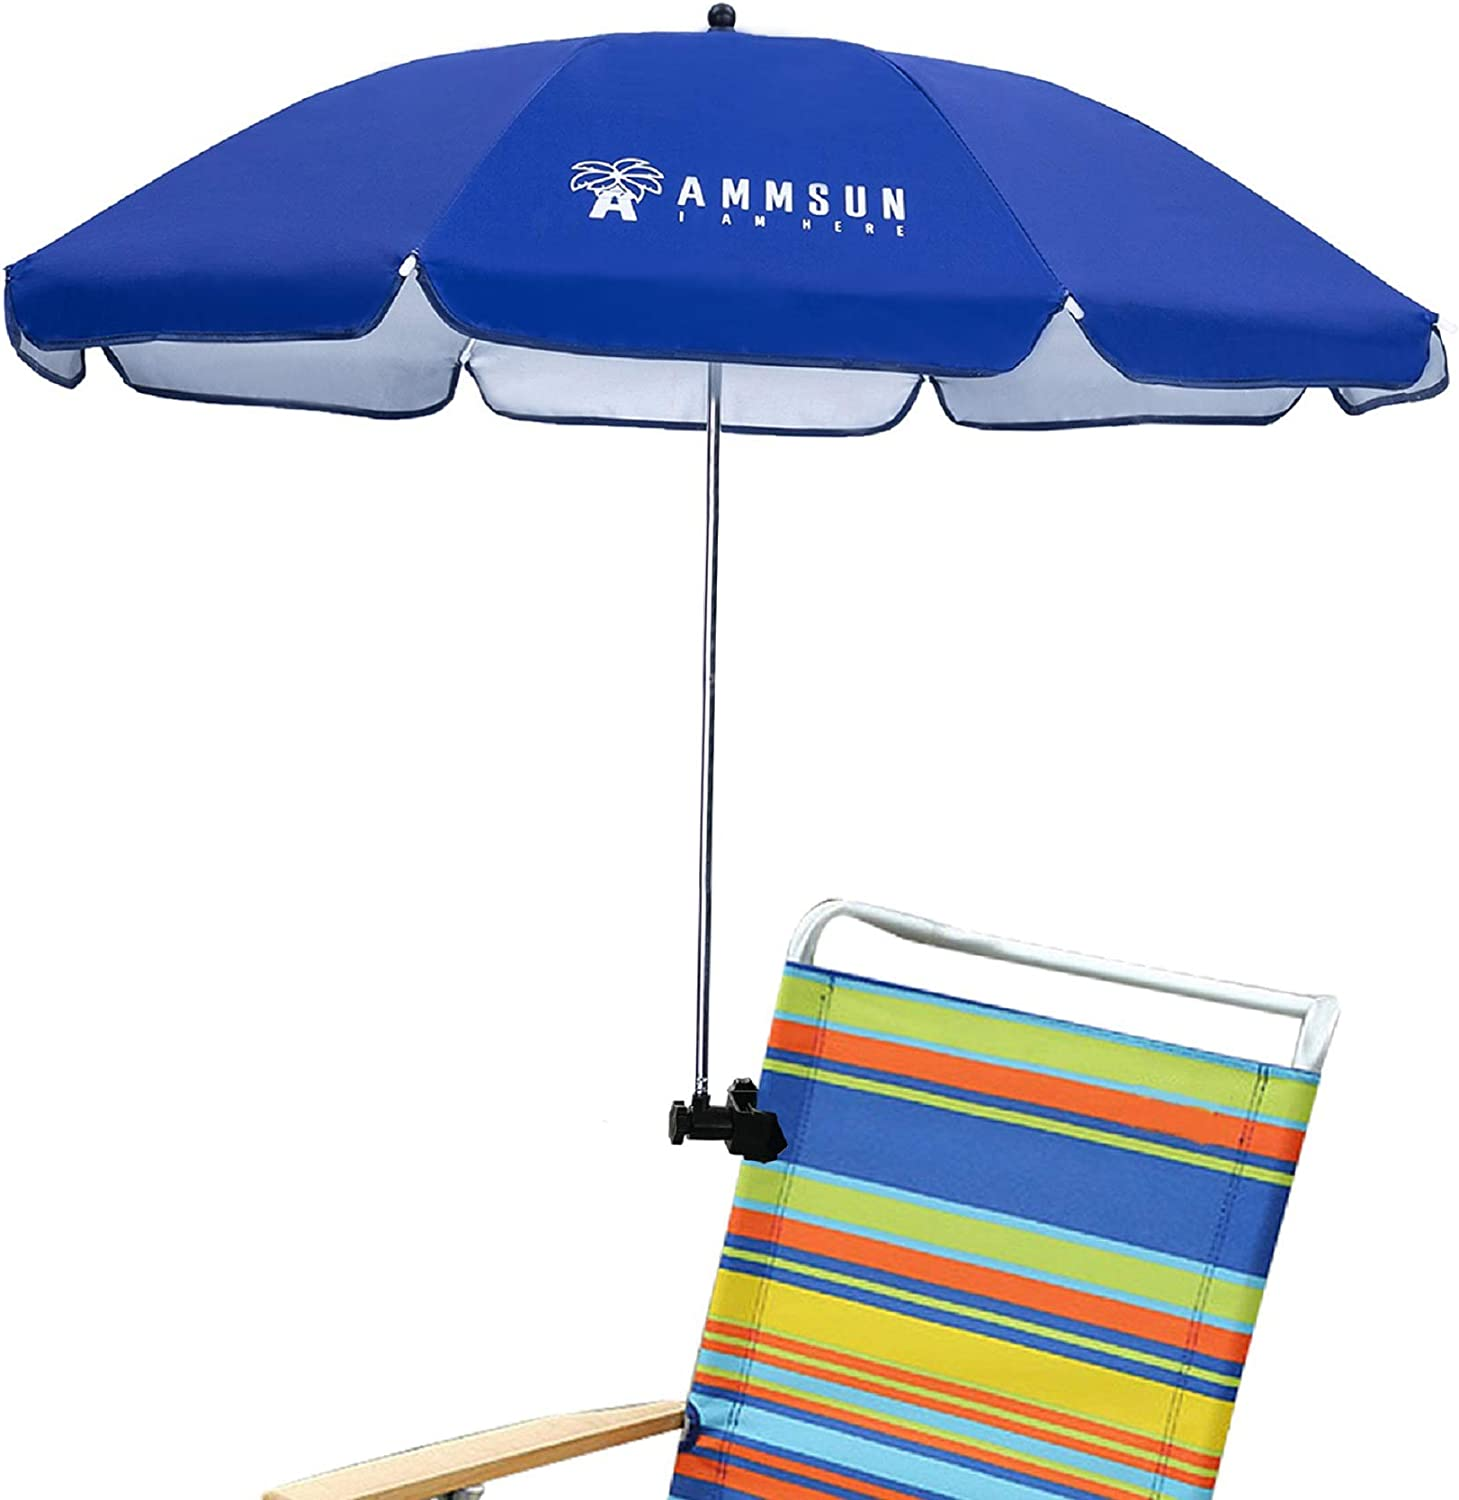 AMMSUN Beach Chair Umbrella with Adjustable Clamp 43 inches UPF 50+, Portable Clamp on Patio Chair, Beach Chair, Stroller, Sport chair, Wheelchair, and Wagon (Blue)